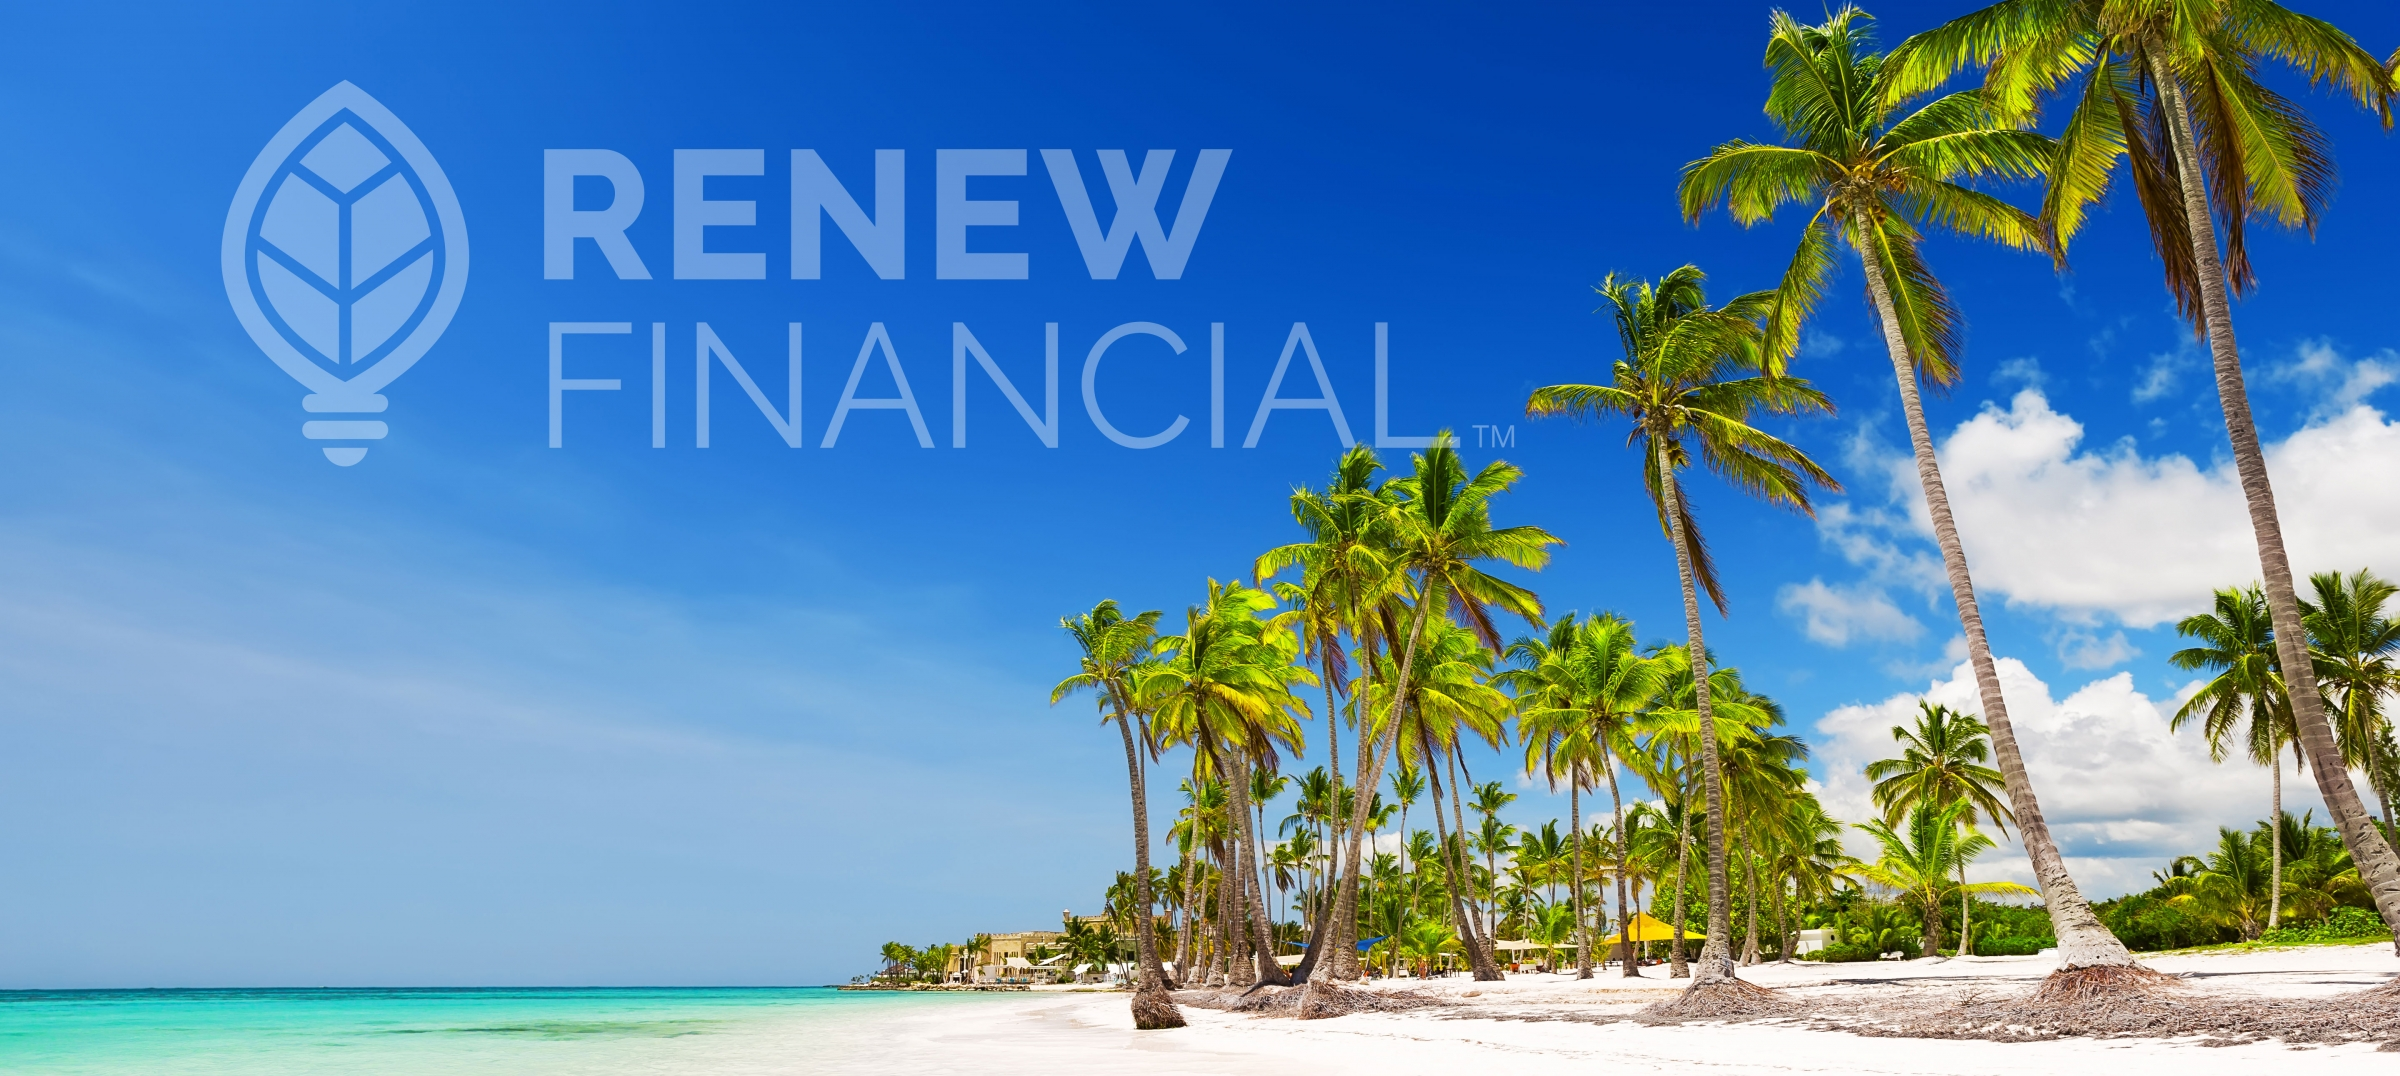 Renew Financial supports Florida recovery